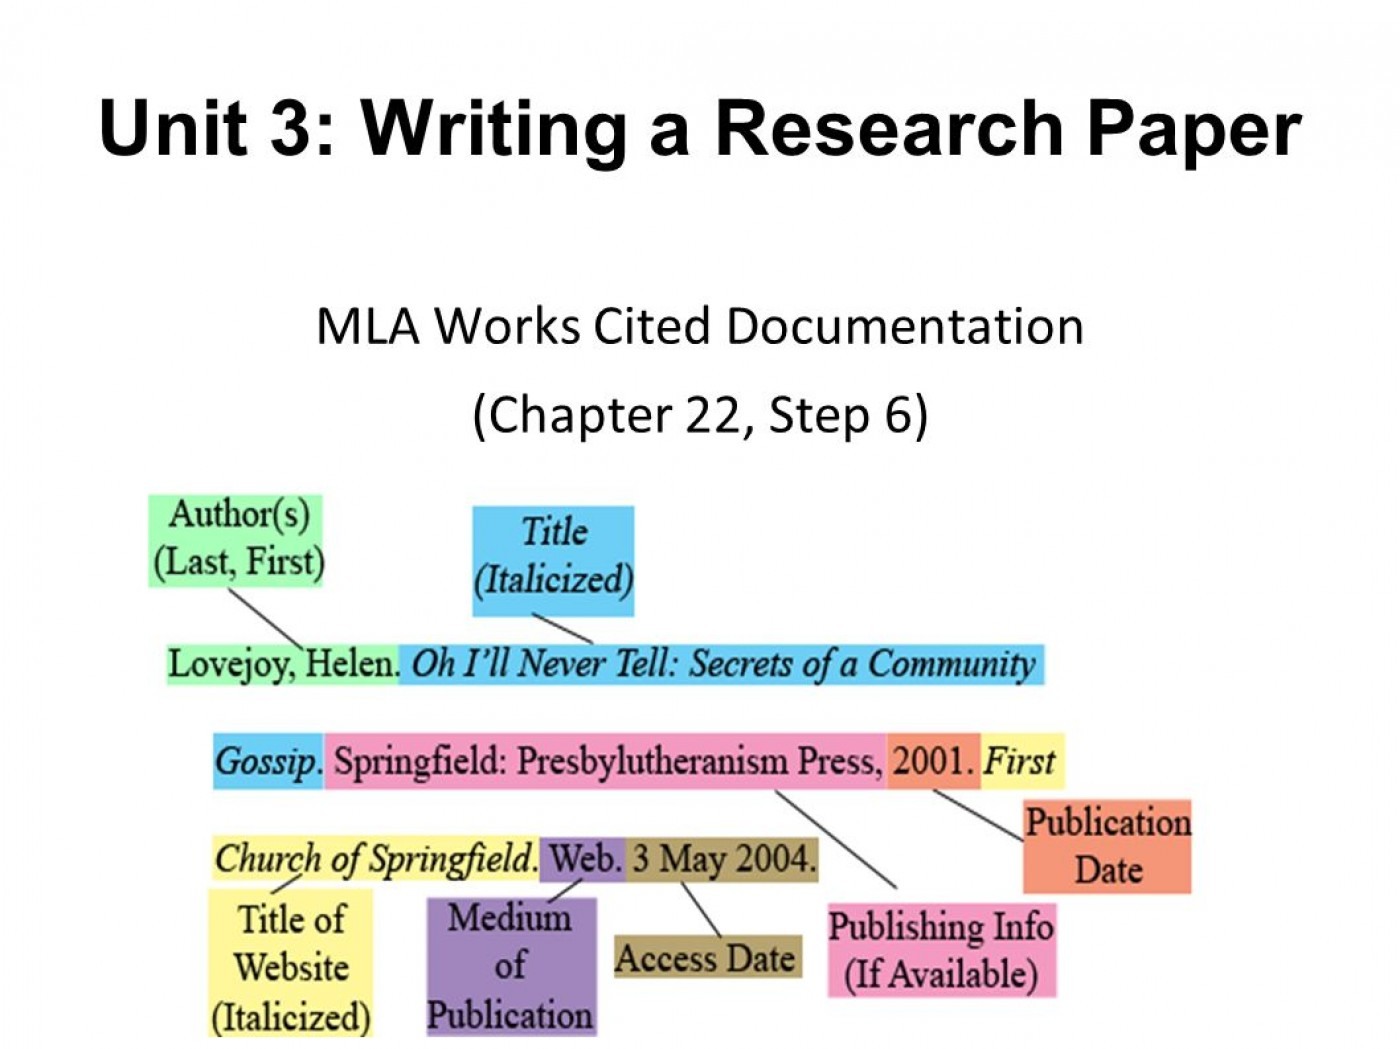 012 Slide 1 Cite Research Paper Staggering Mla How To Quotes In Someone Else's 1400